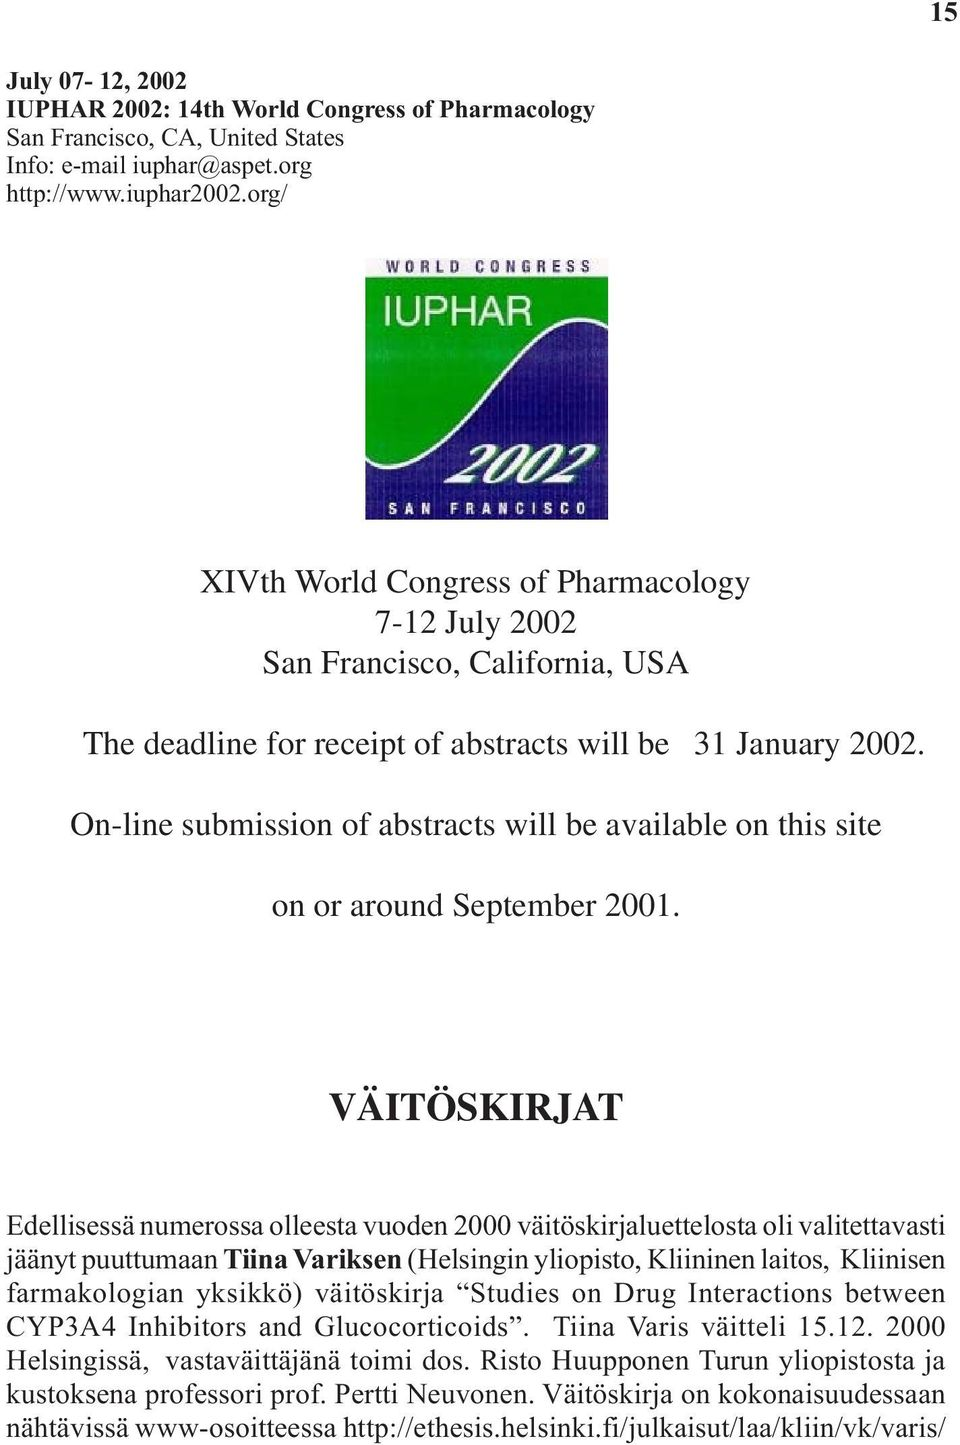 On-line submission of abstracts will be available on this site on or around September 2001.